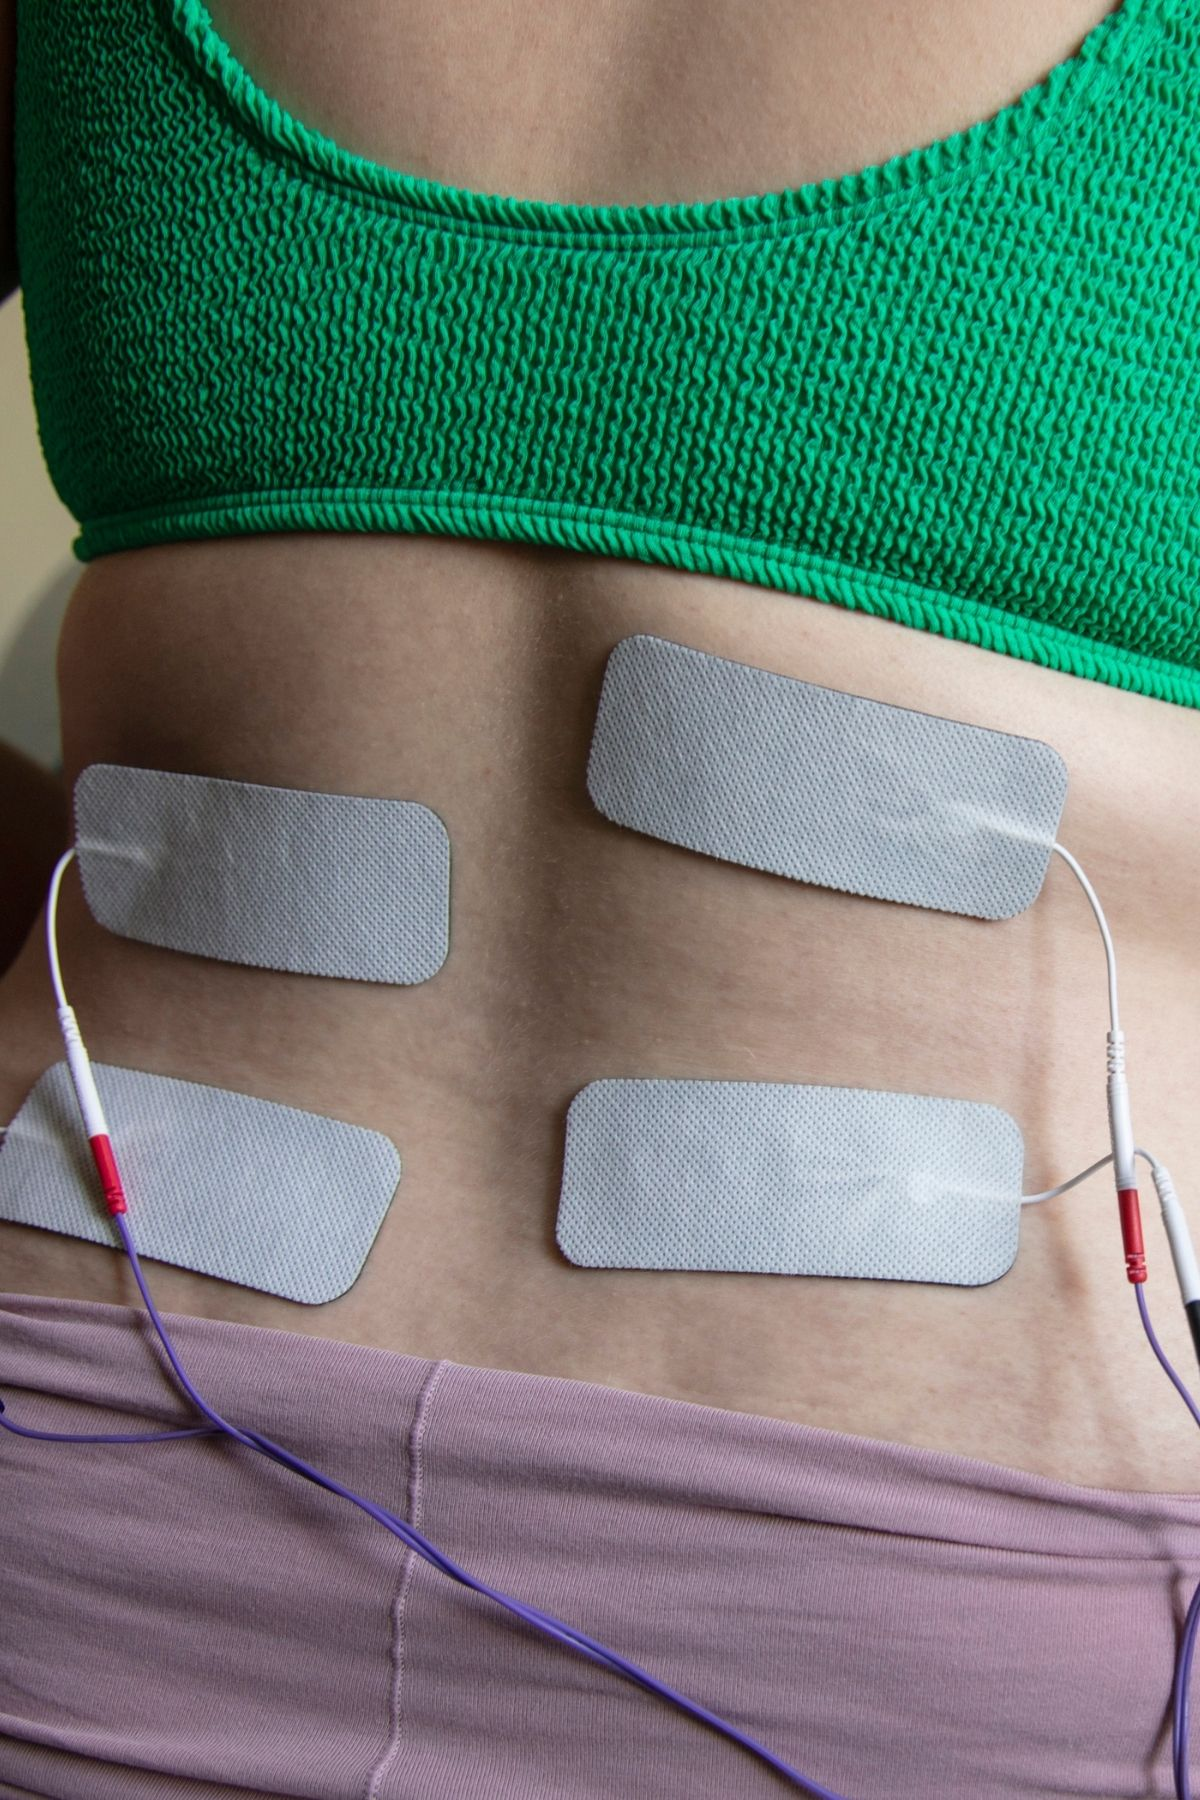 Woman shows her back patched with electrical wires from TENS machine during labor.